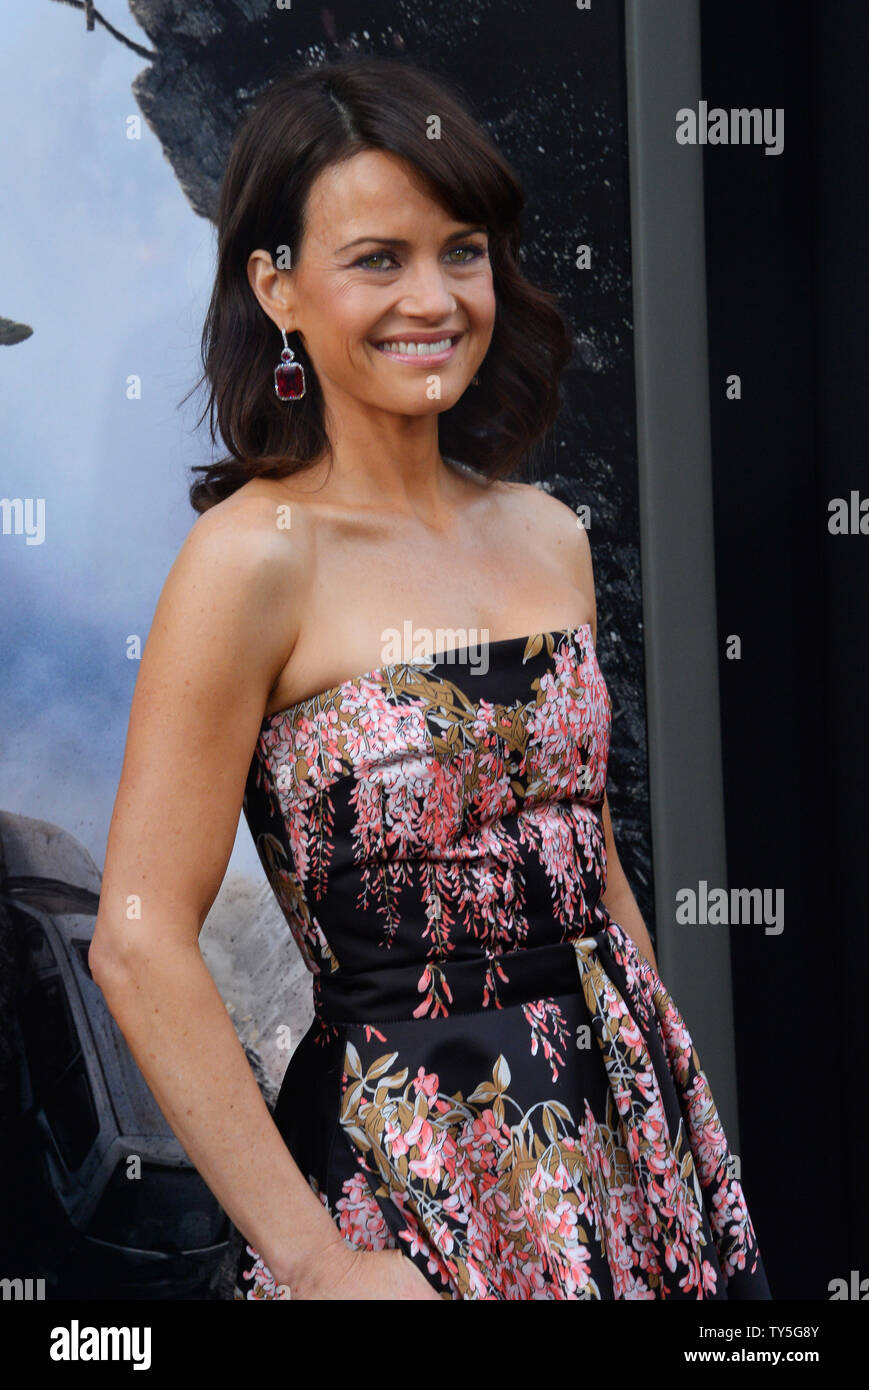 Cast member Carla Gugino attends the premiere of the motion